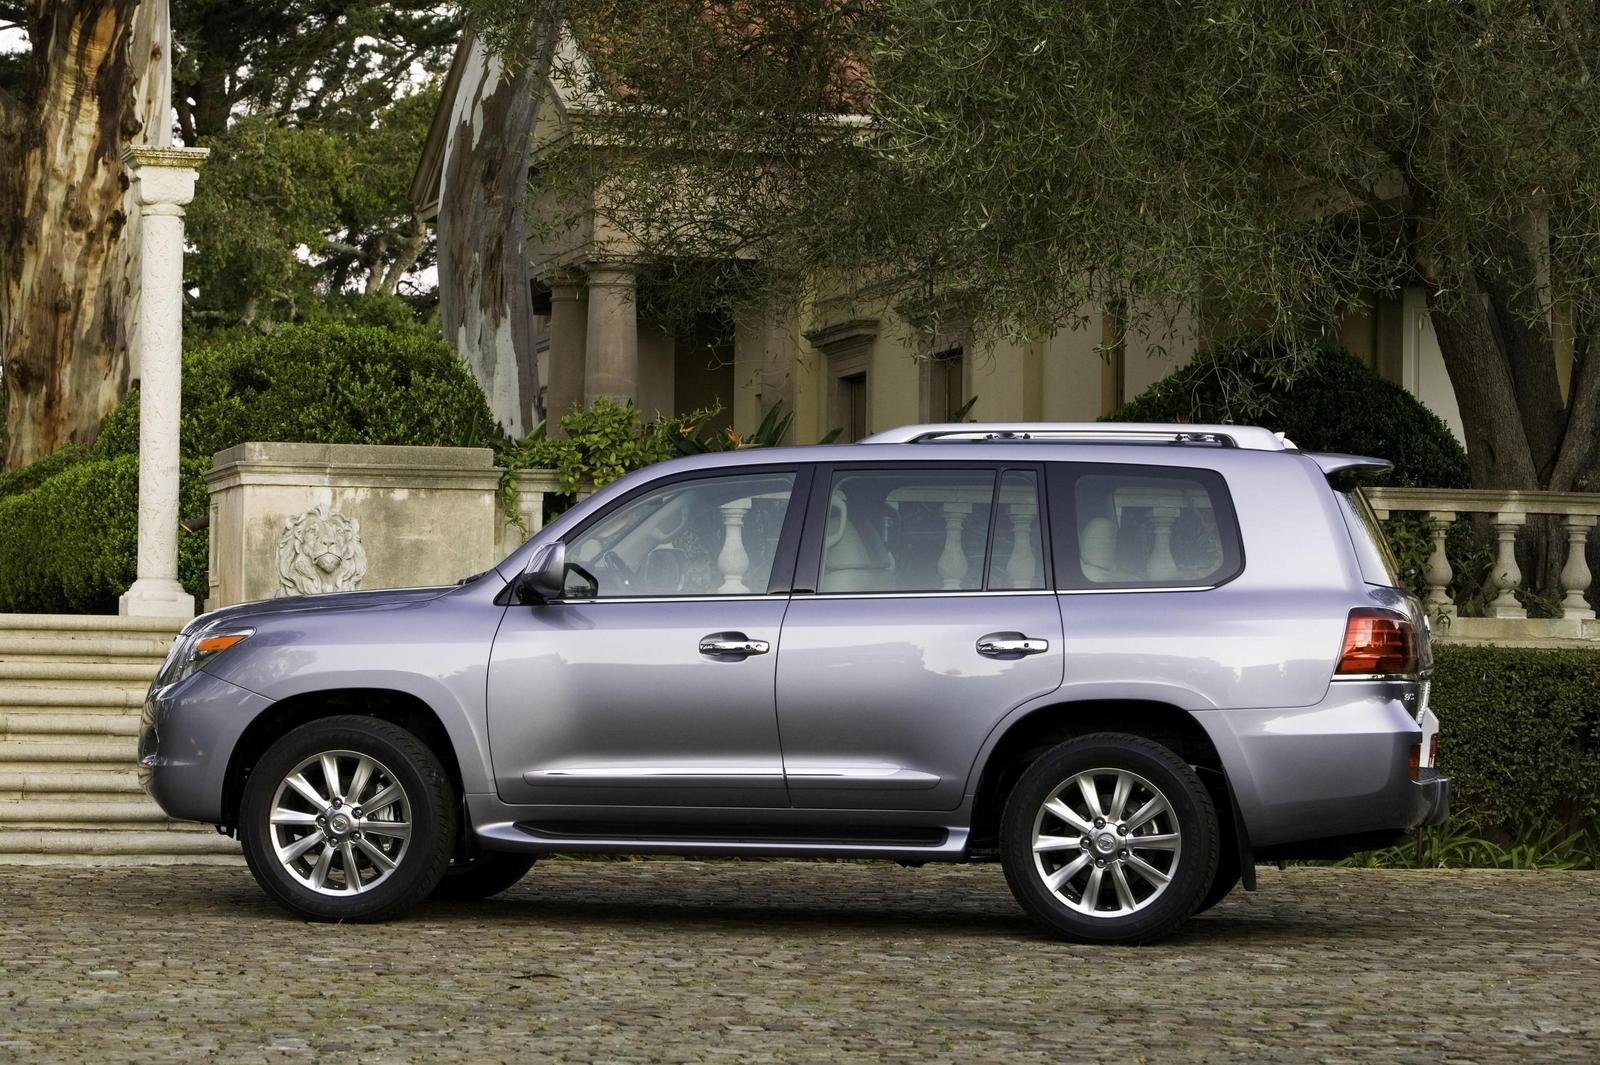 2008 Lexus Lx 570 Picture 159275 Car Review Top Speed